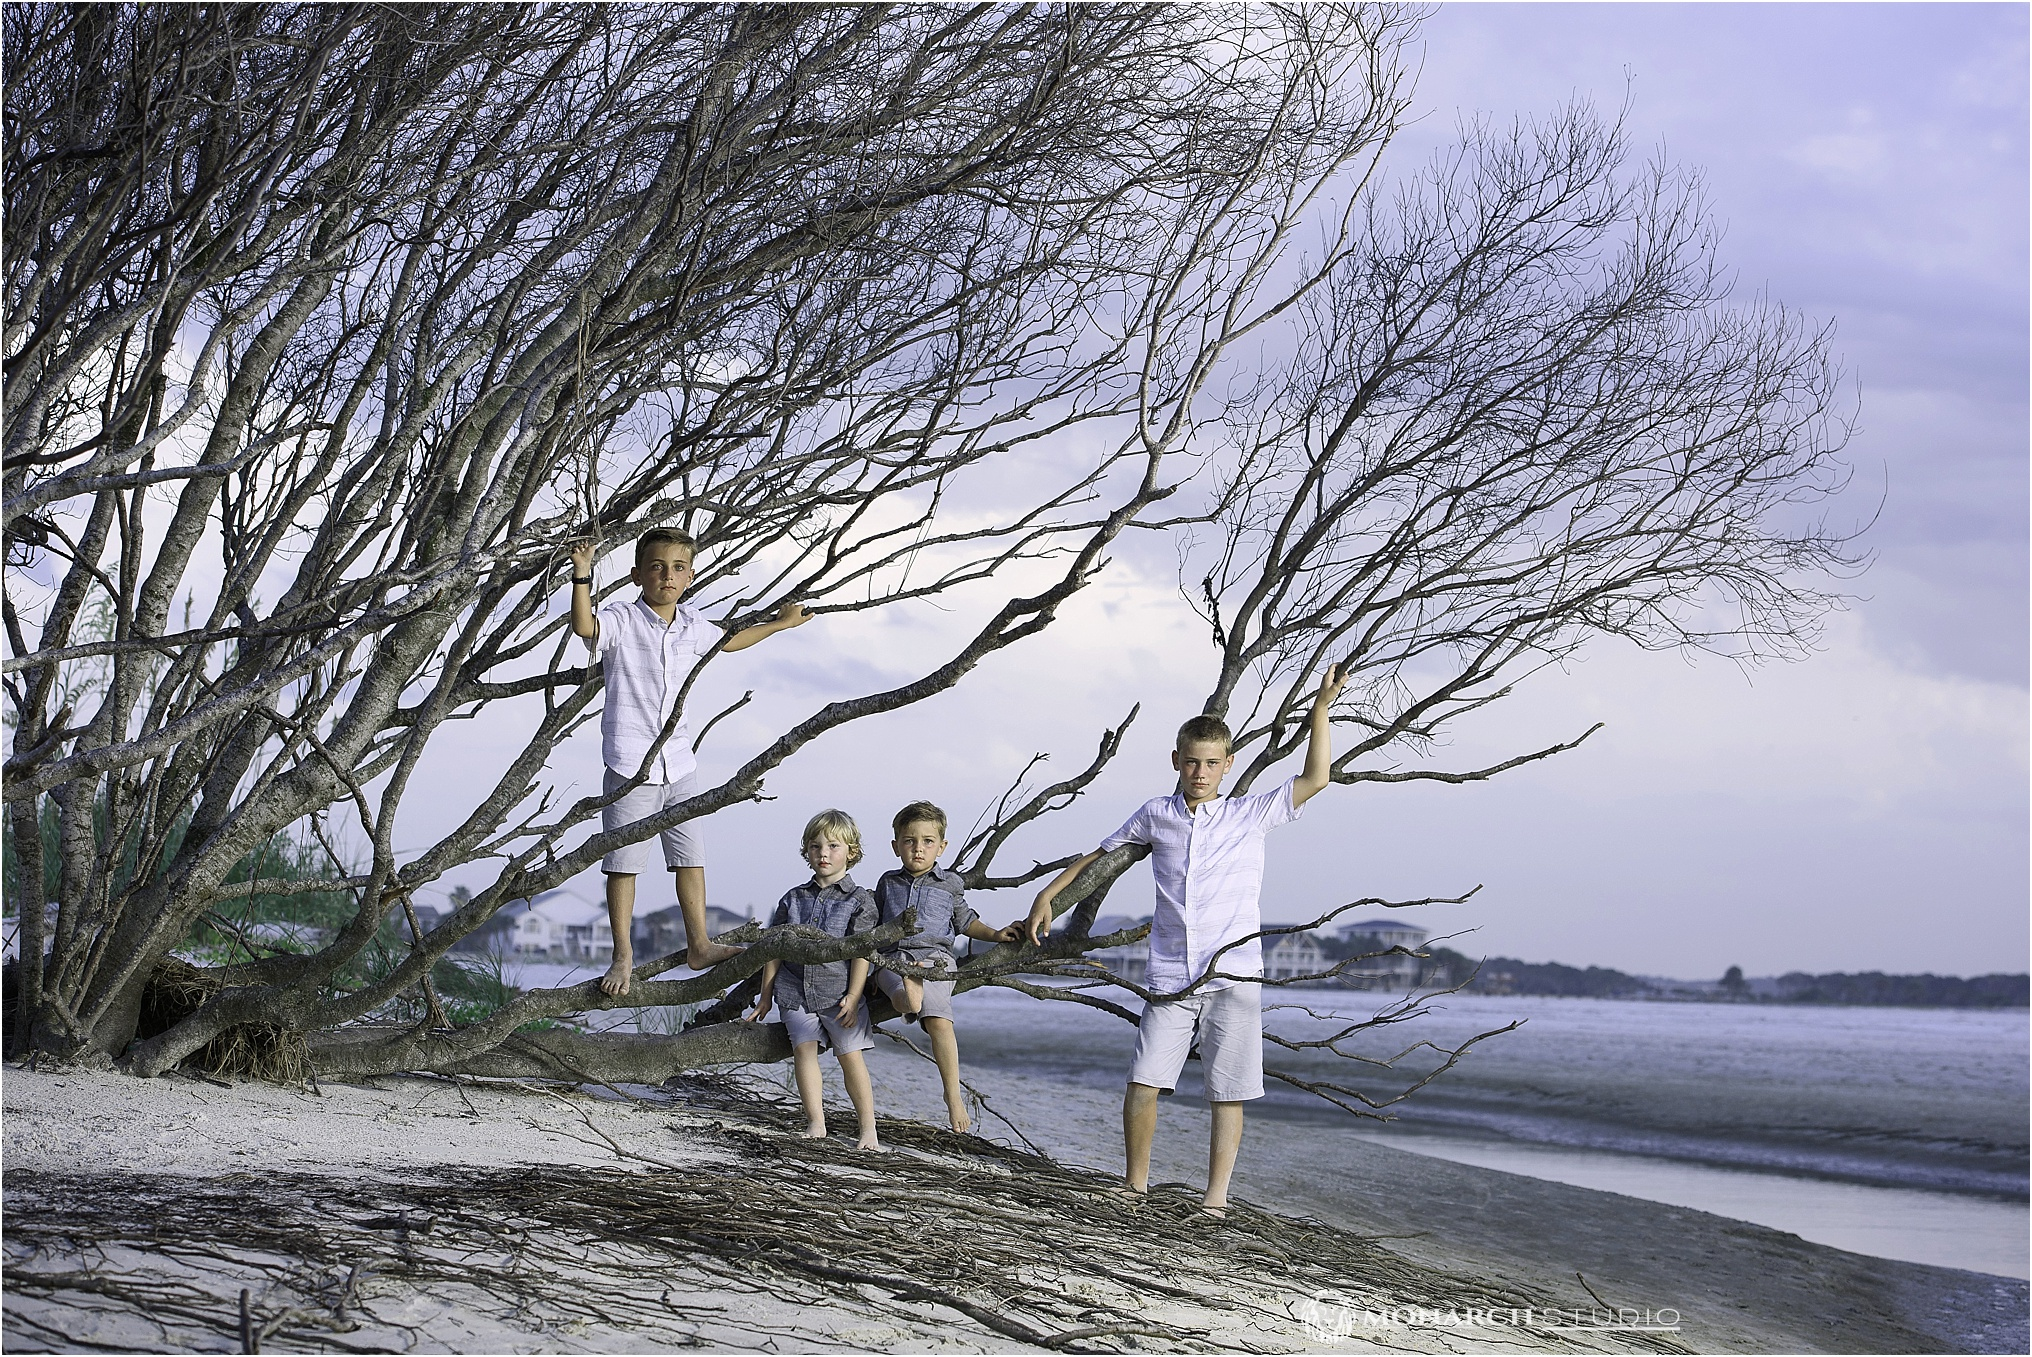 First cousins share a tree lining the Matanzas Inlet